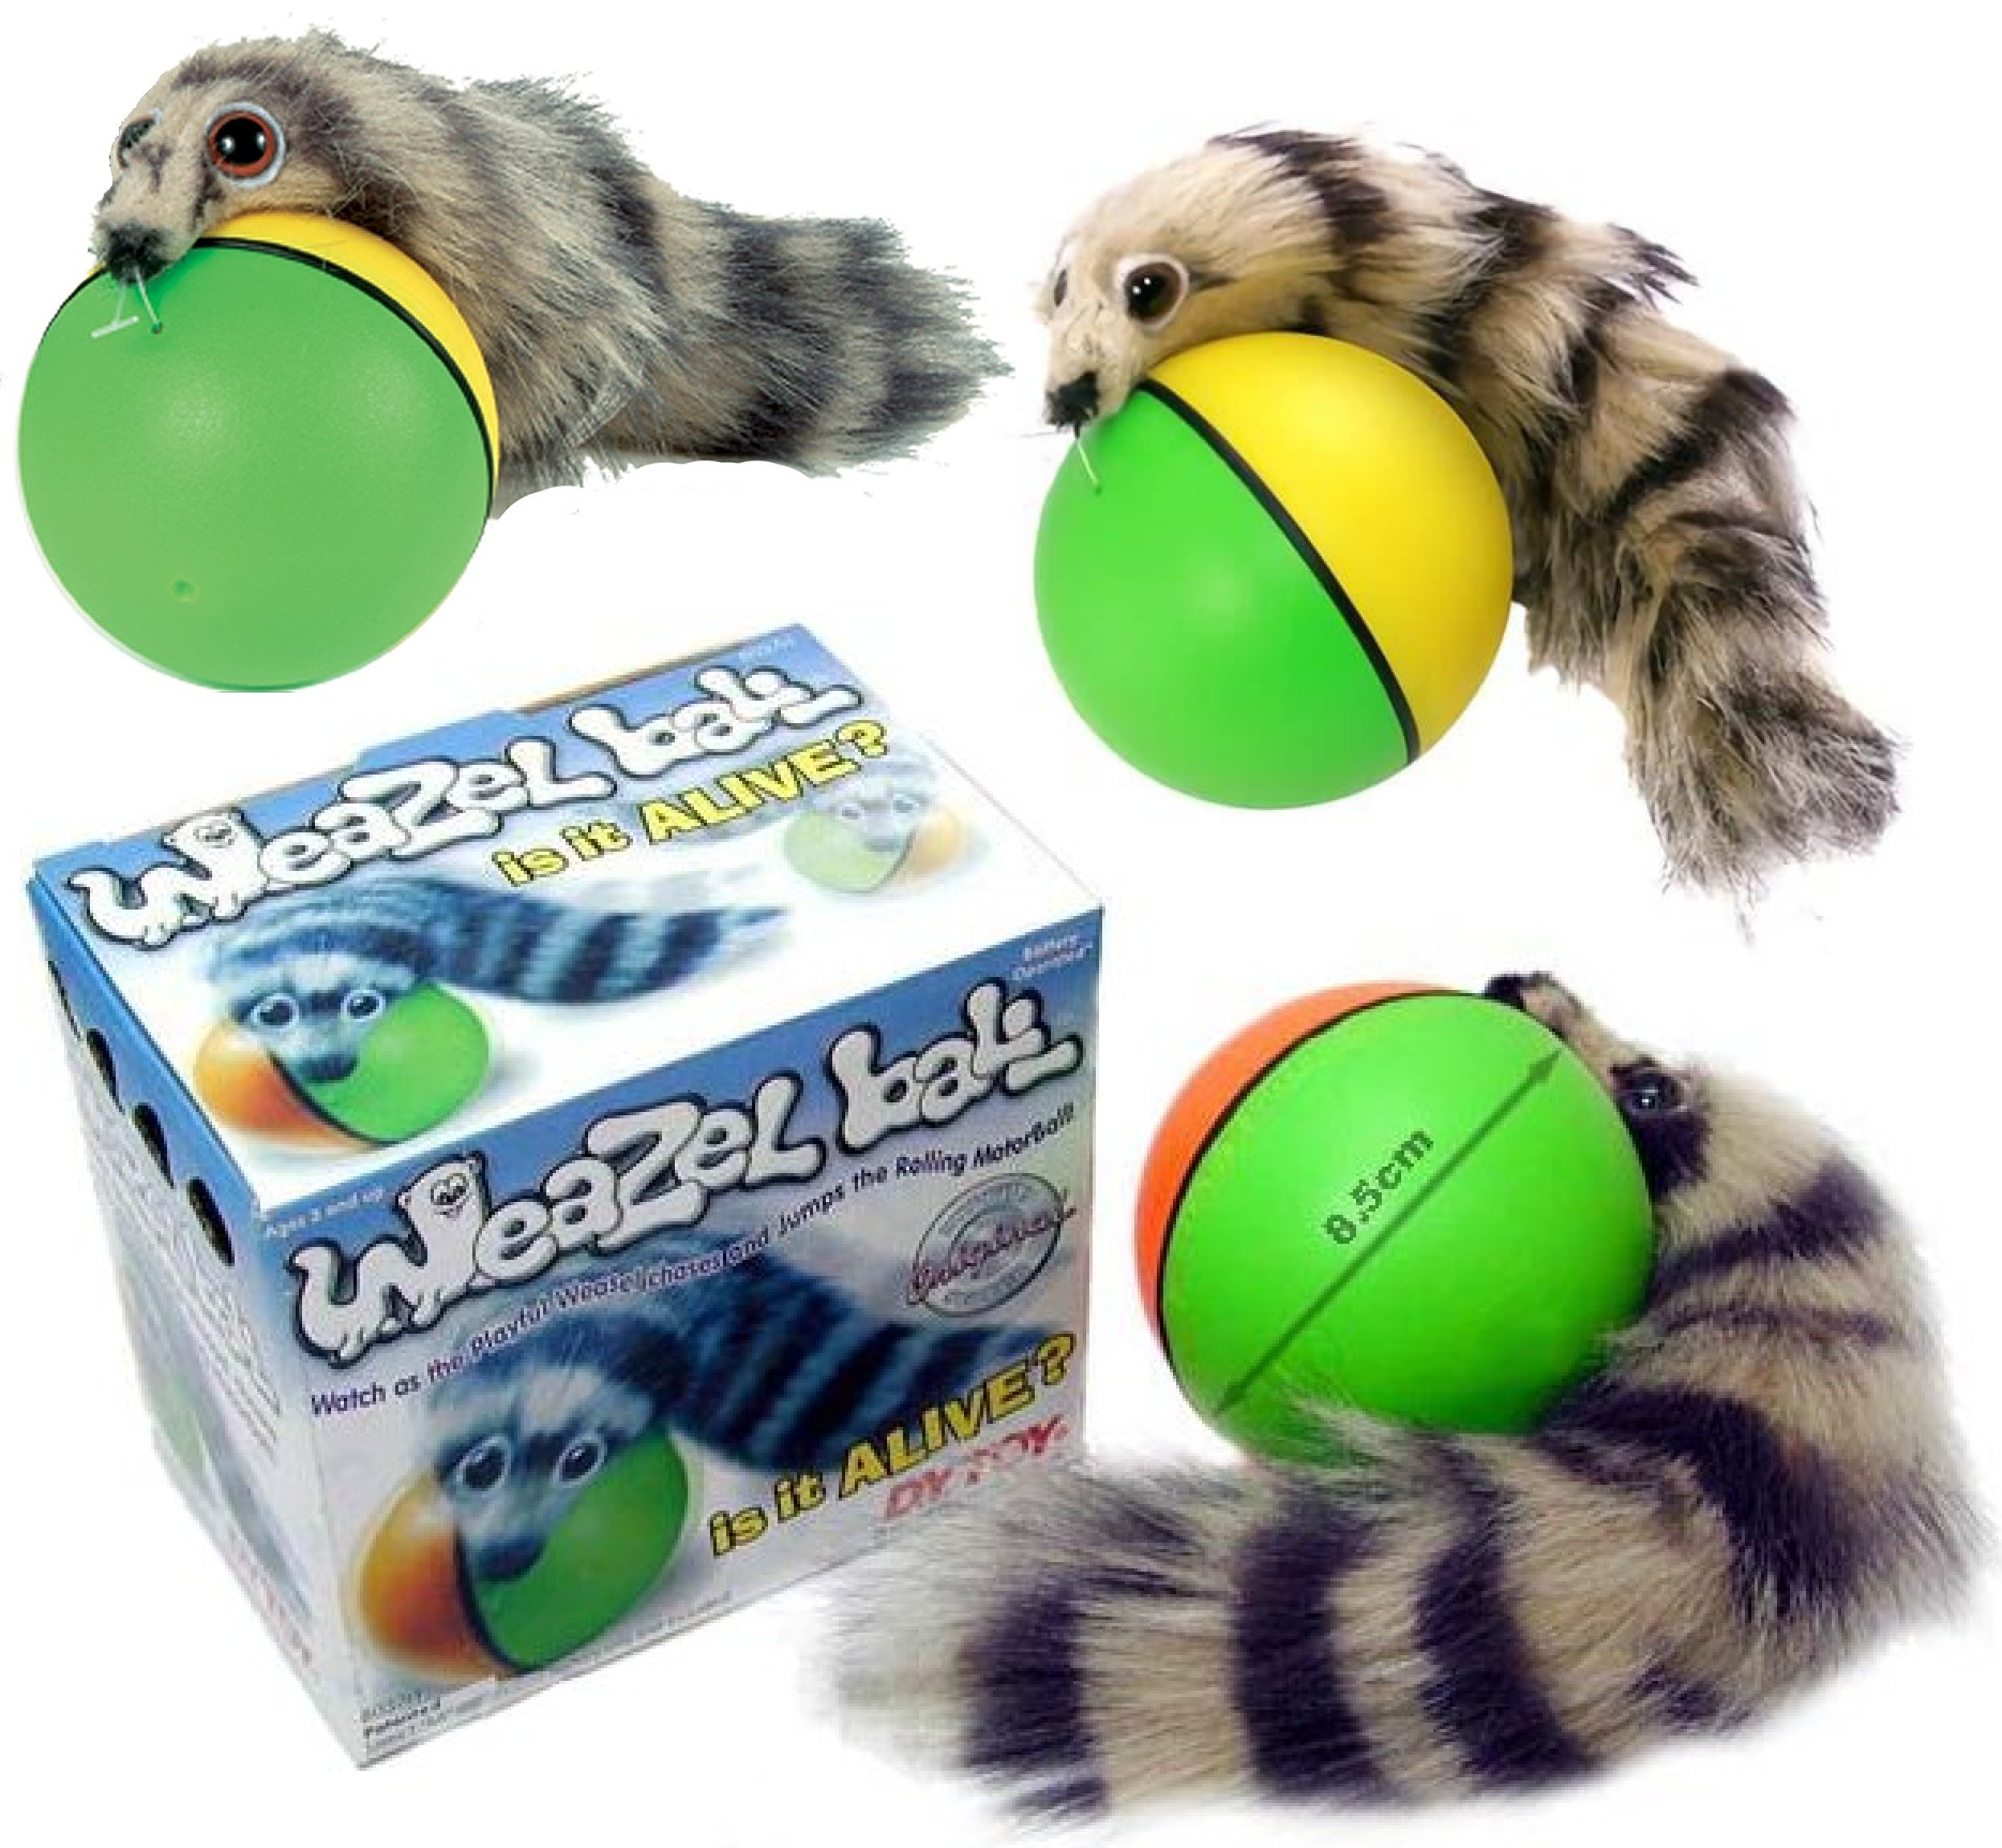 D.Y.TOY Weazel Ball - 3 Pack - Battery Operated Toy for Kids, Adults, Dogs or Cats by D.Y.TOY